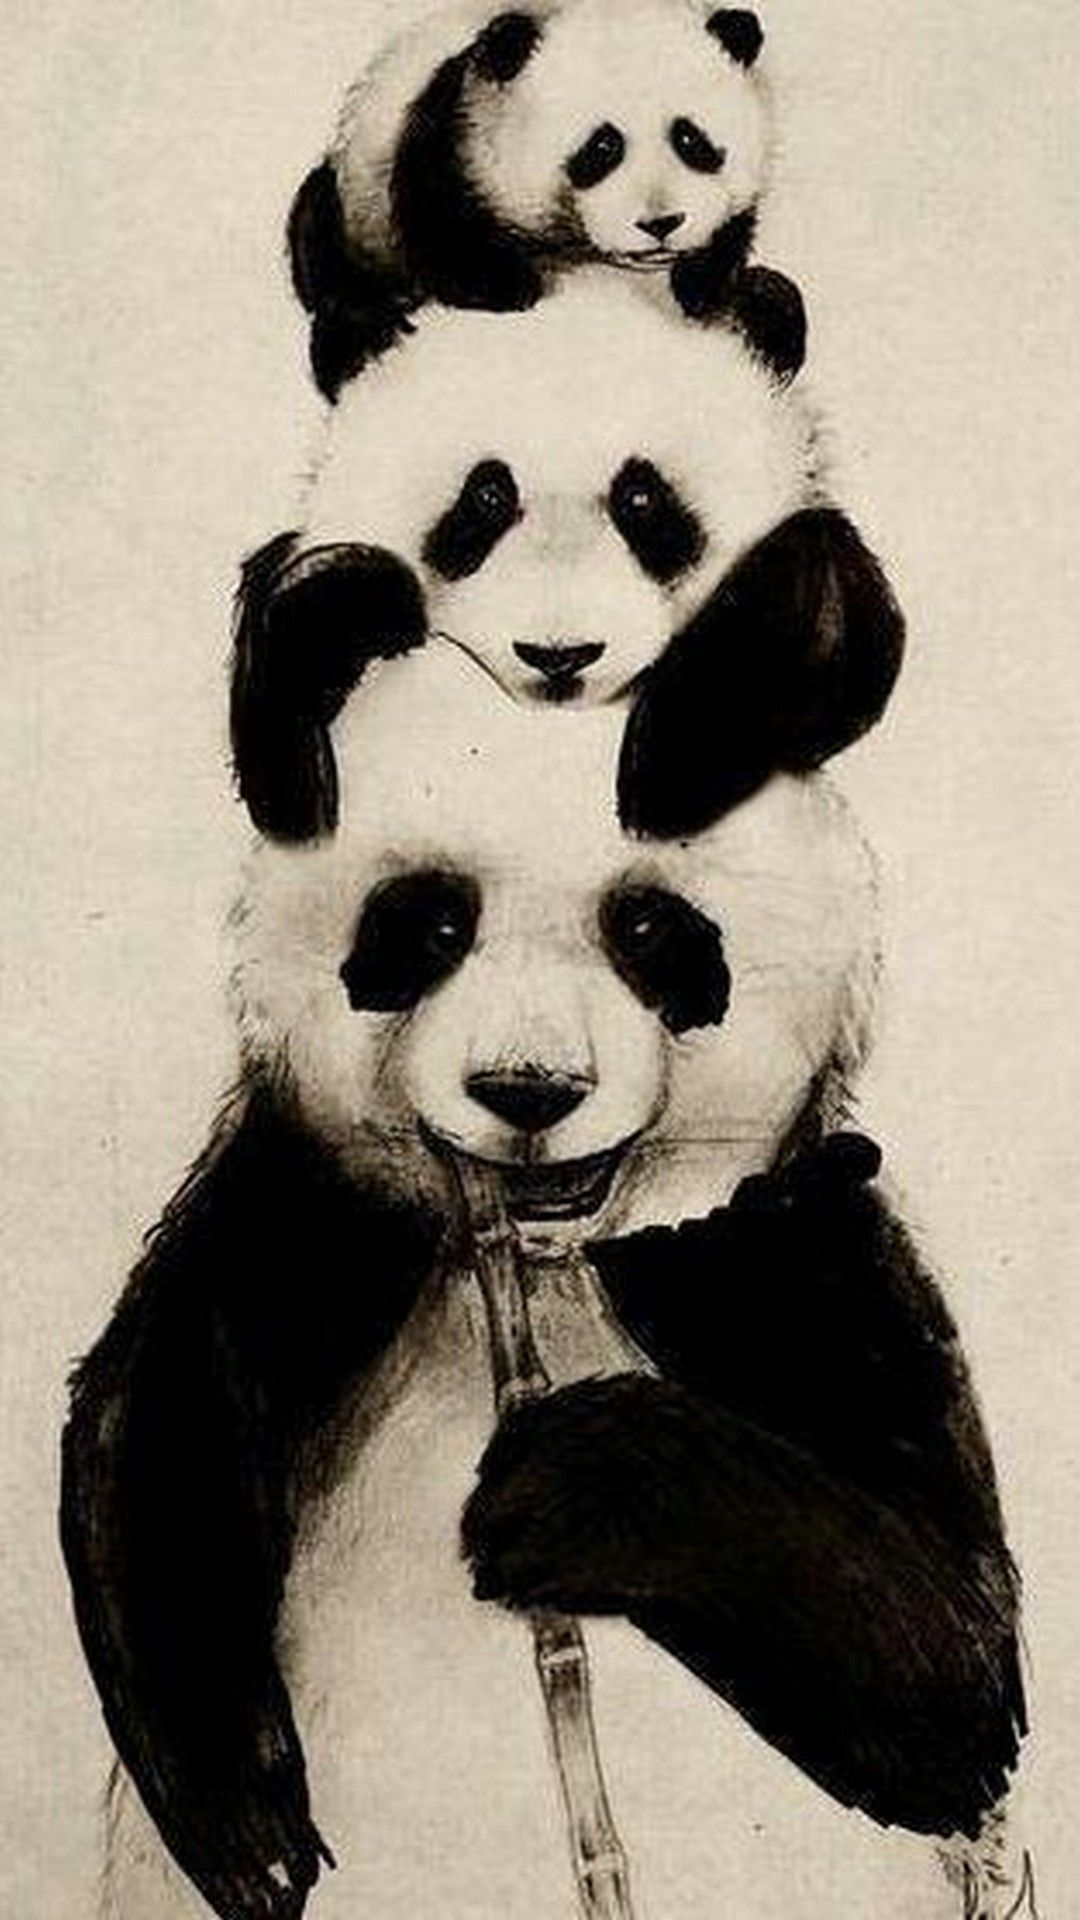 Cute Panda Wallpaper Android Cute panda wallpaper, Panda